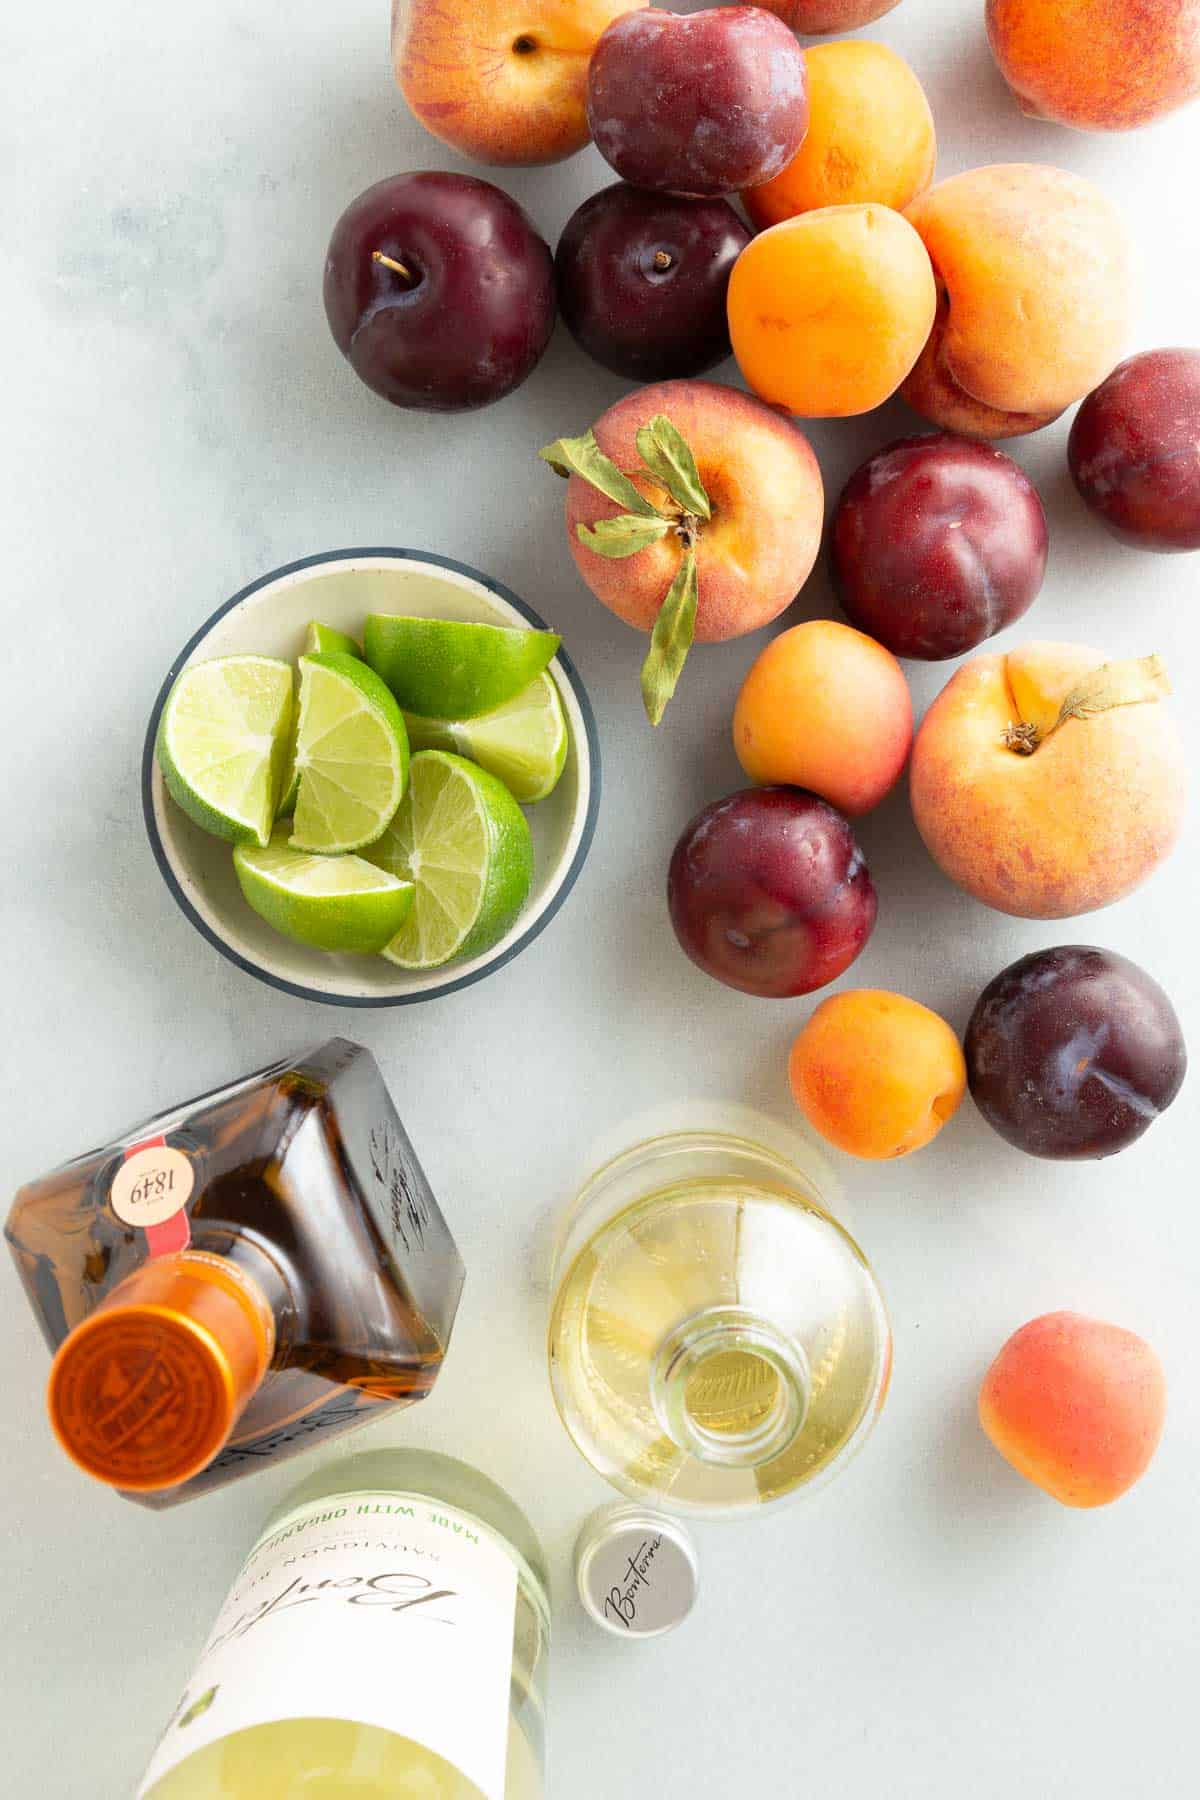 overhead view of peaches, plumbs, and limes next to bottles of liquor